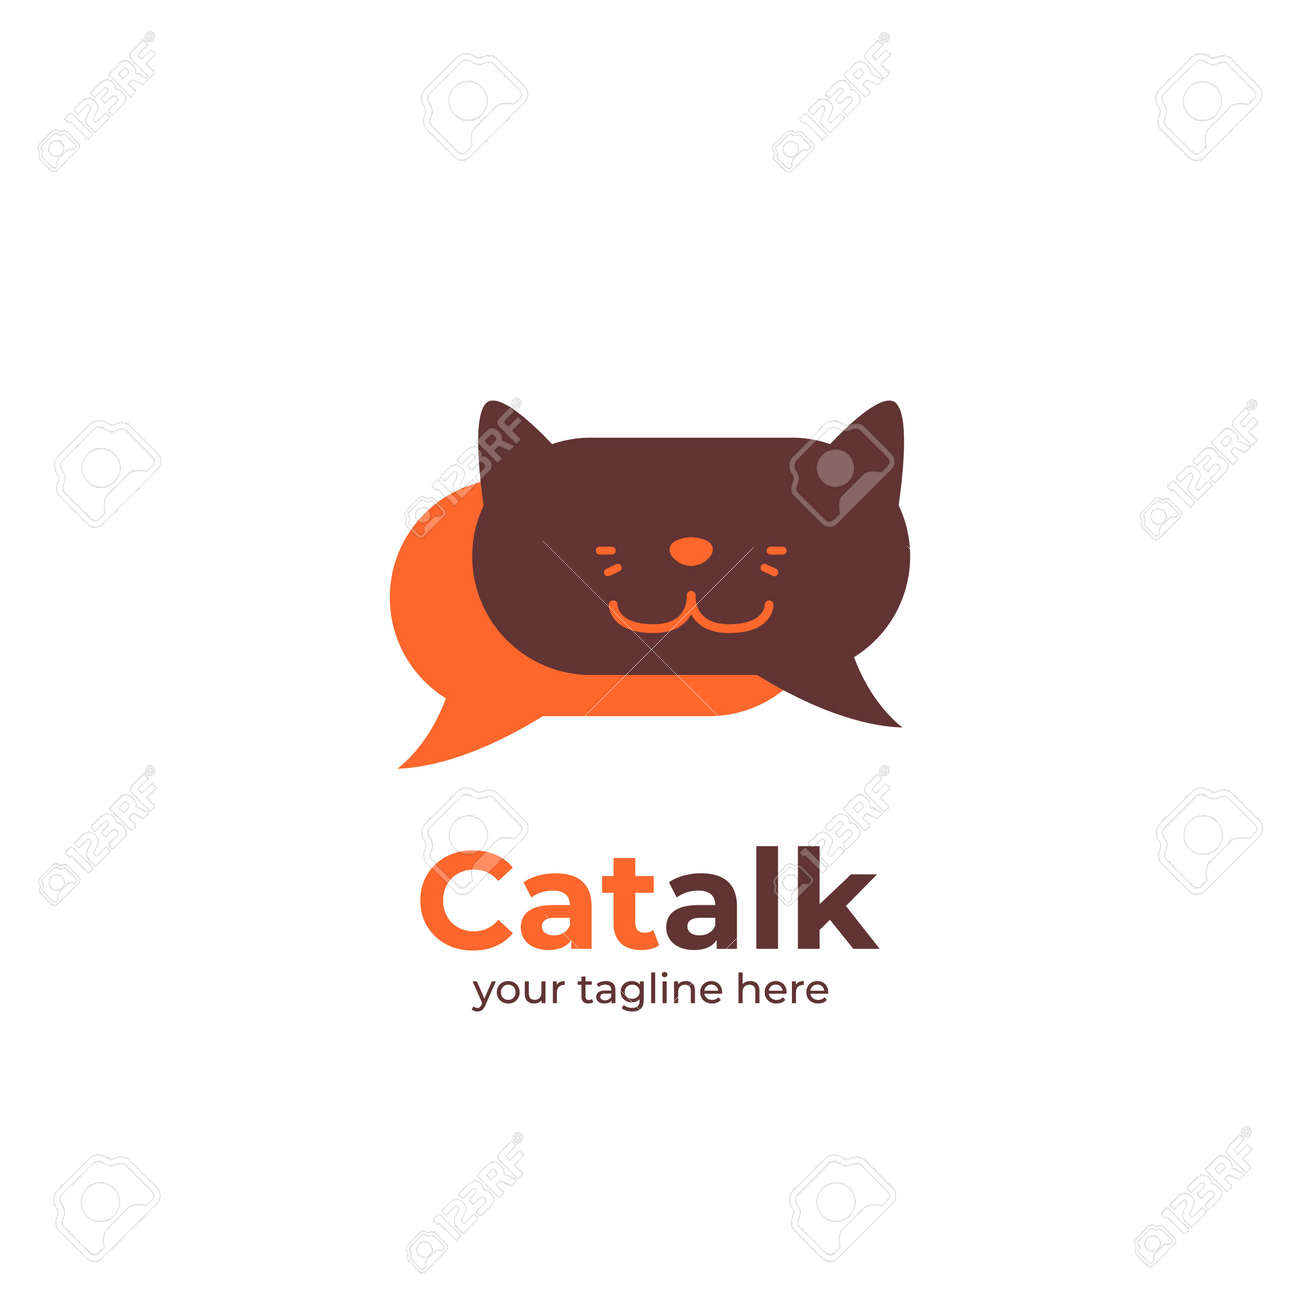 Cat Talk Logo For Forum Community Or Chat App Cat Logo In Bubble Royalty Free Cliparts Vectors And Stock Illustration Image 127323668